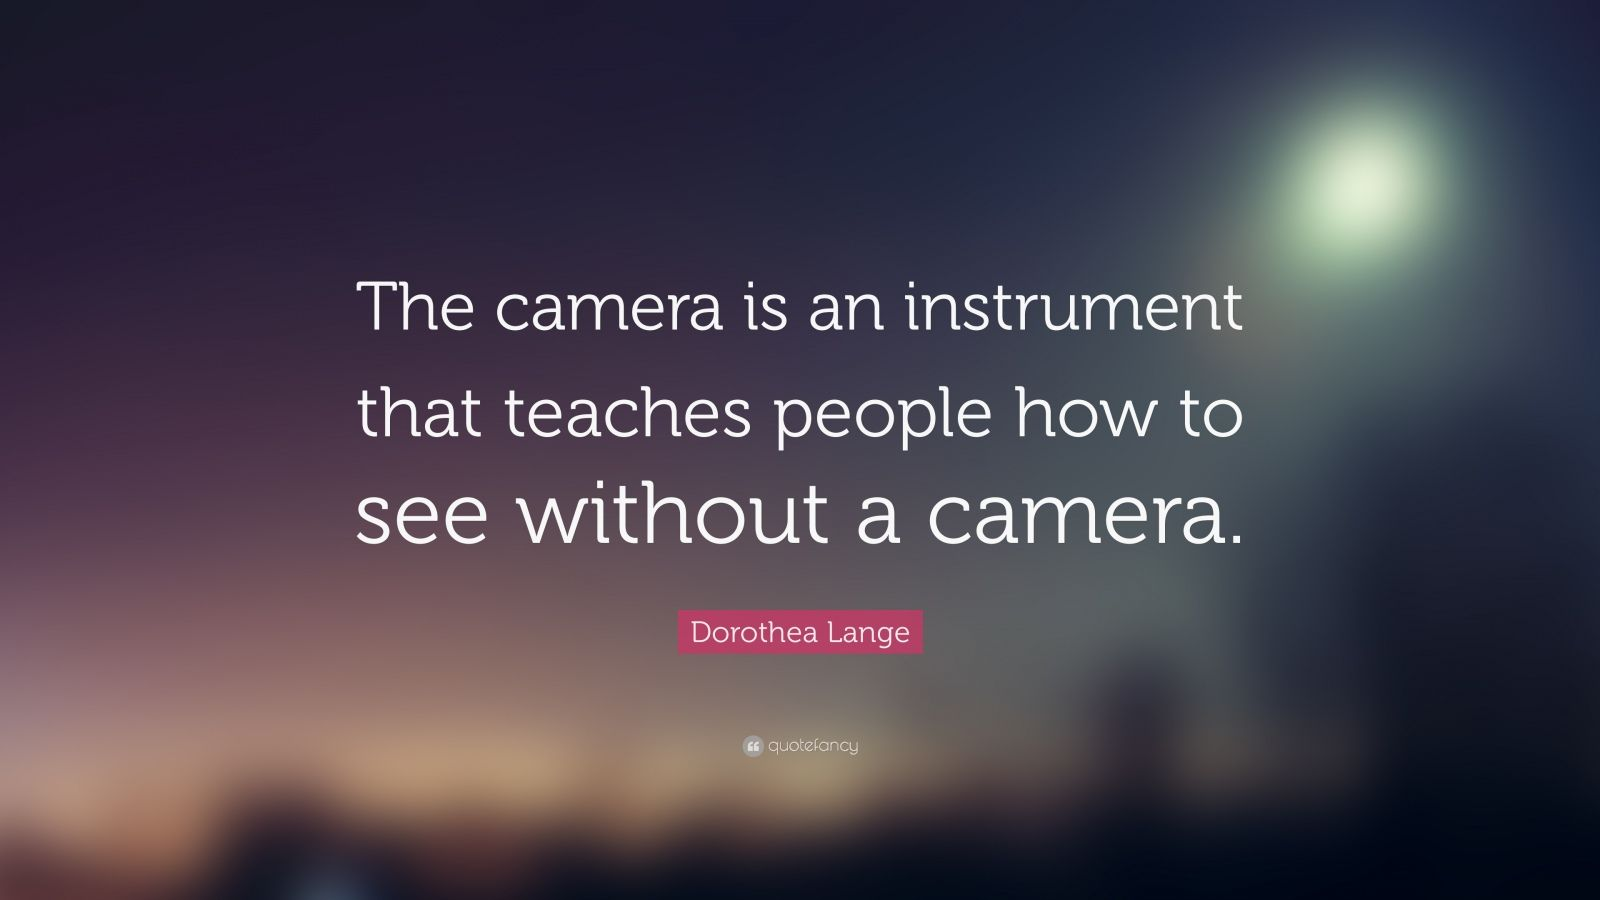 Motivational Life Quotes Wallpapers Dorothea Lange Quote The Camera Is An Instrument That